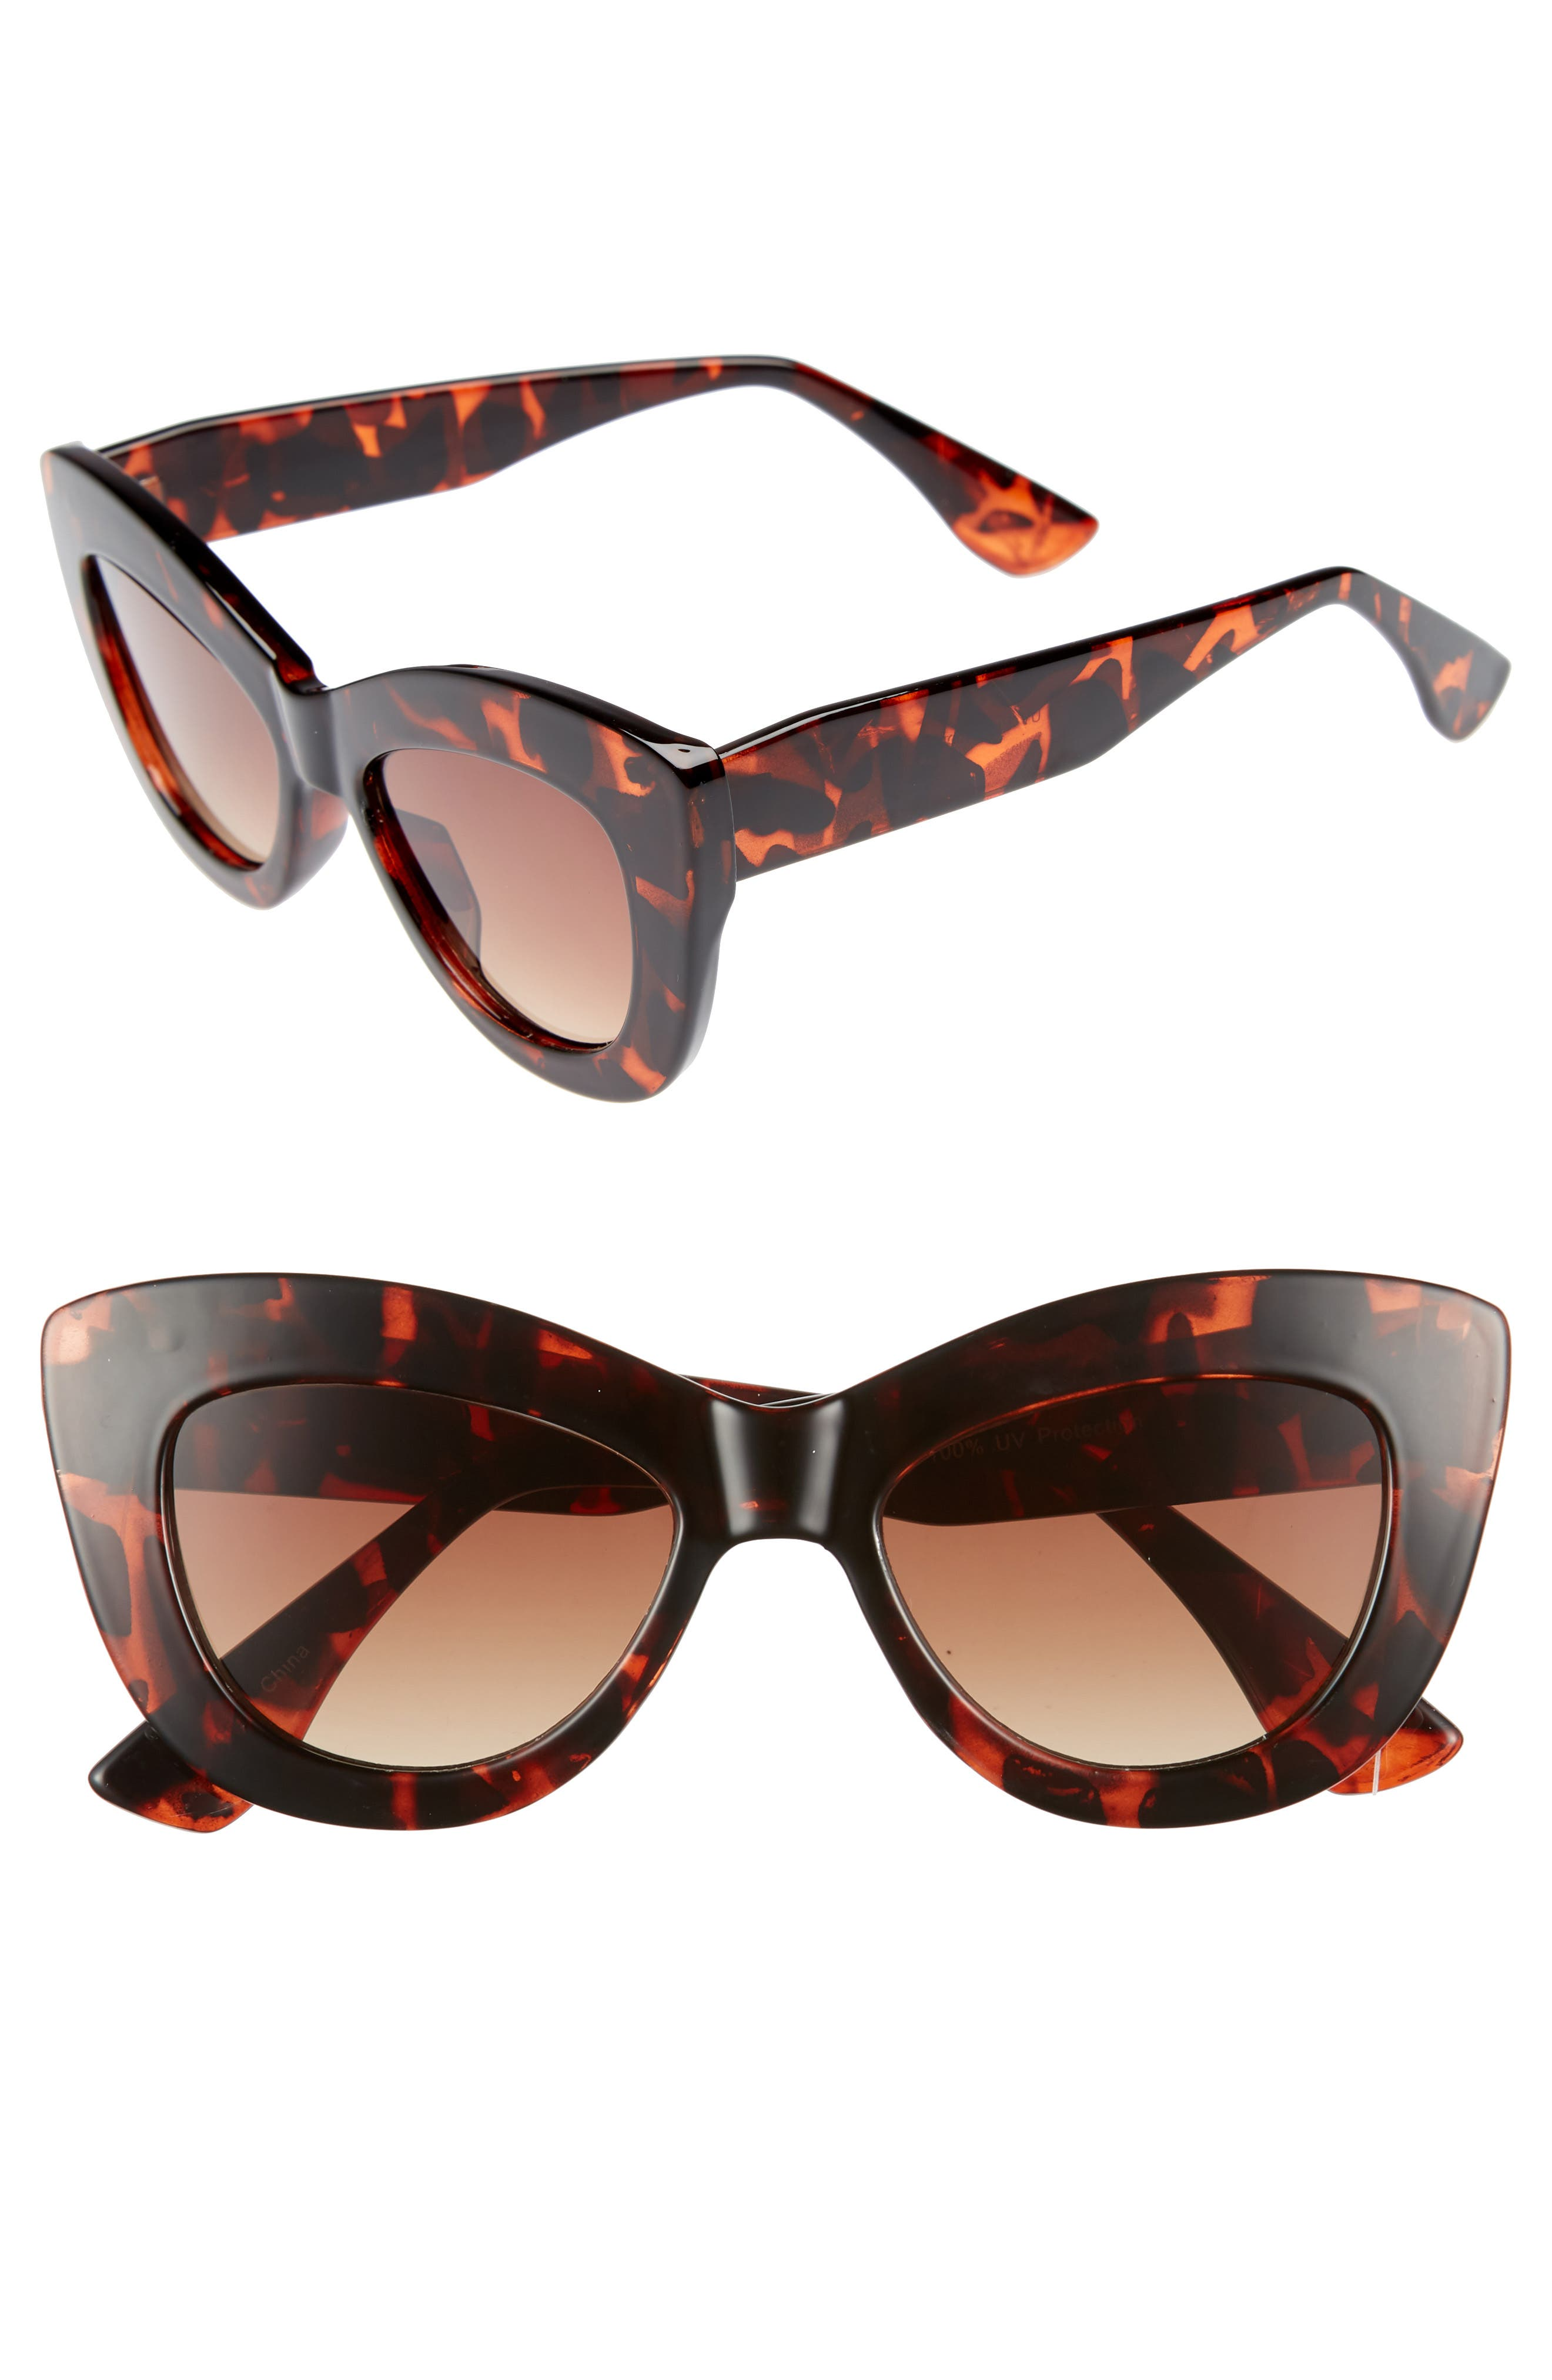 65mm Cat Eye Sunglasses,                             Main thumbnail 1, color,                             200